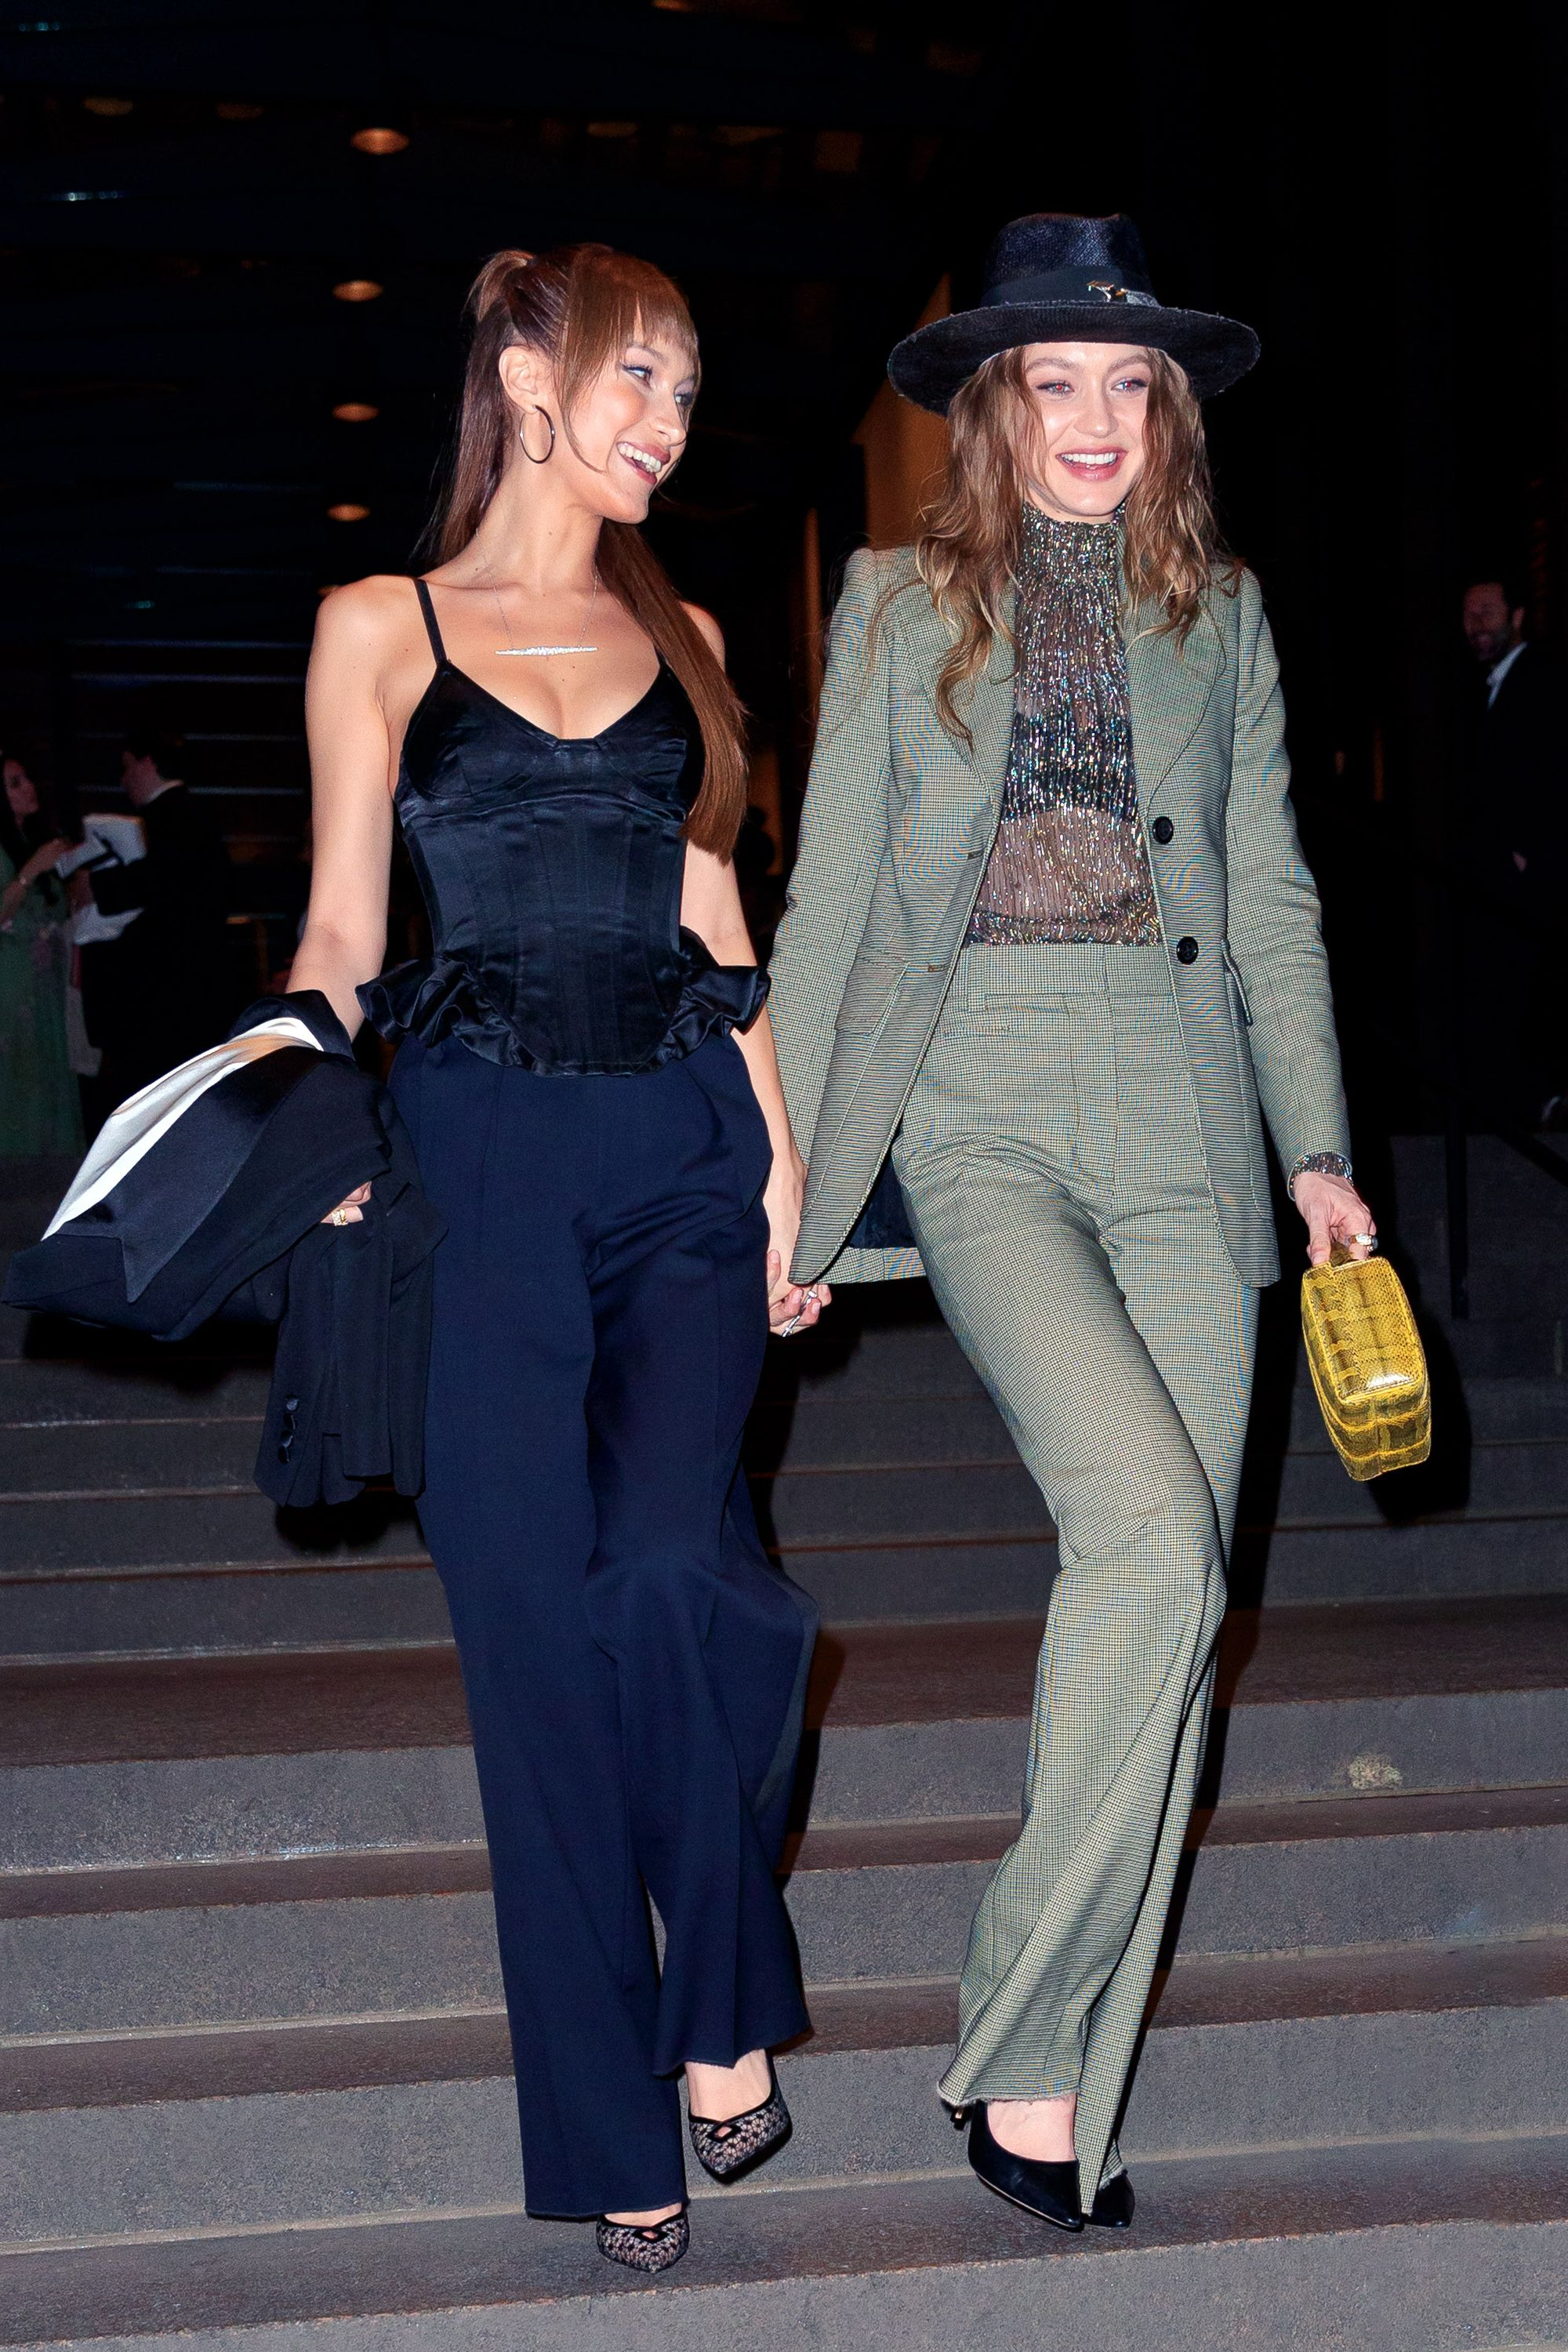 April 7, 2019 For Marc Jacobs' wedding in NYC, the Hadid sisters went with smart suited ensembles. While Bella opted for a peplum top and navy trousers, Gigi wore a gray two-piece suit with a sheer high-neck top that showed off her bra.